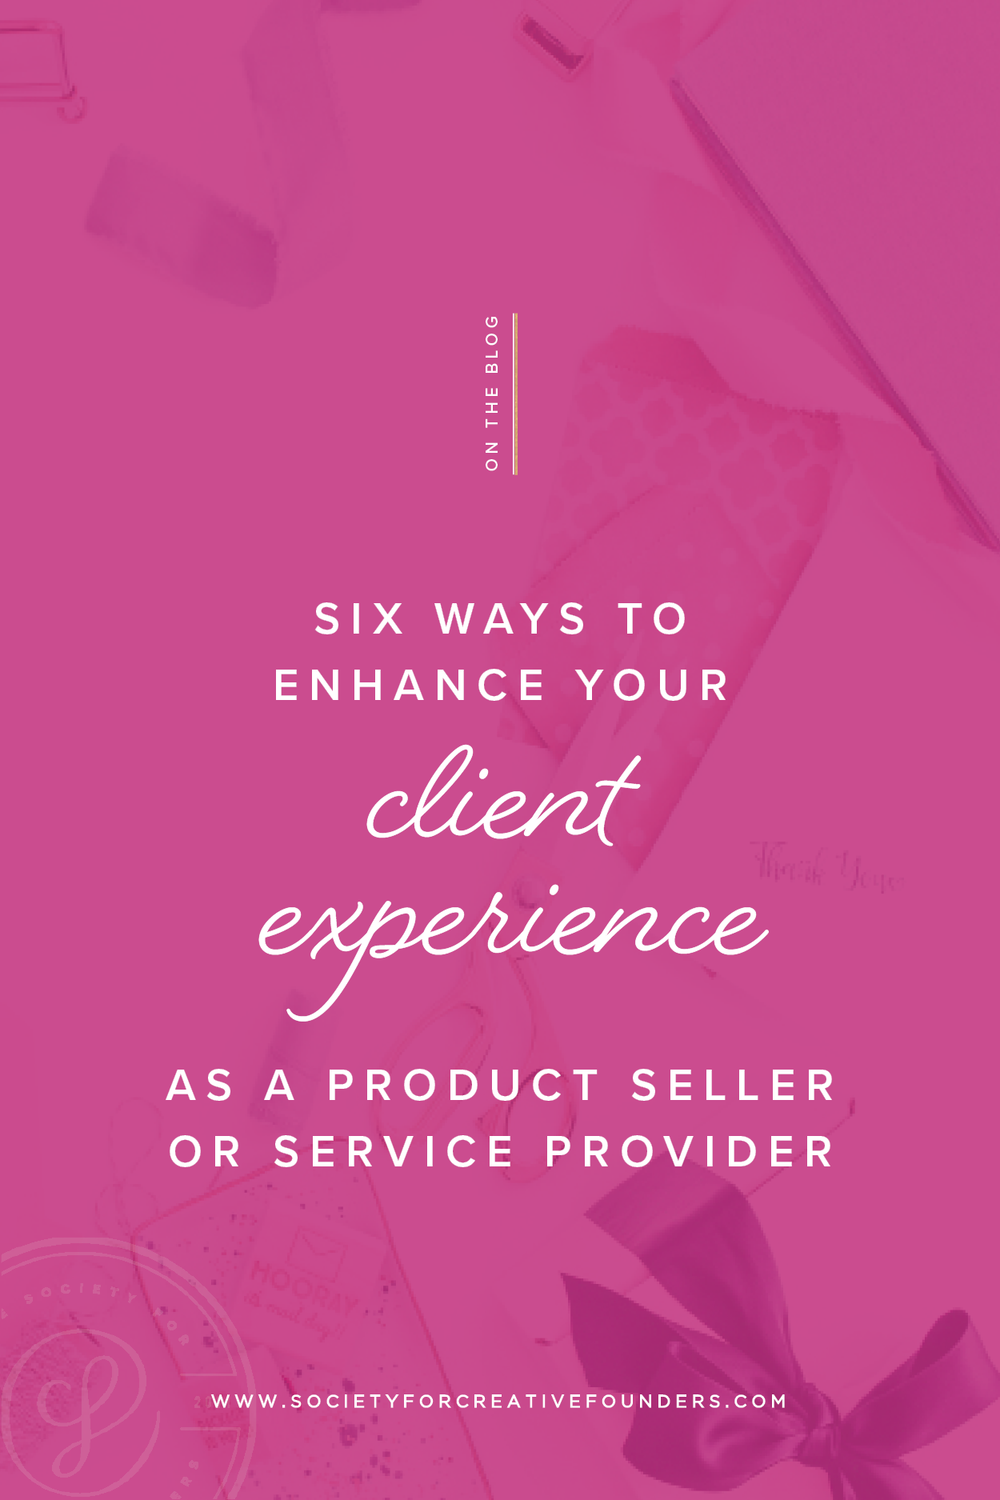 Six ways to enhance your client experience from Society for Creative Founders